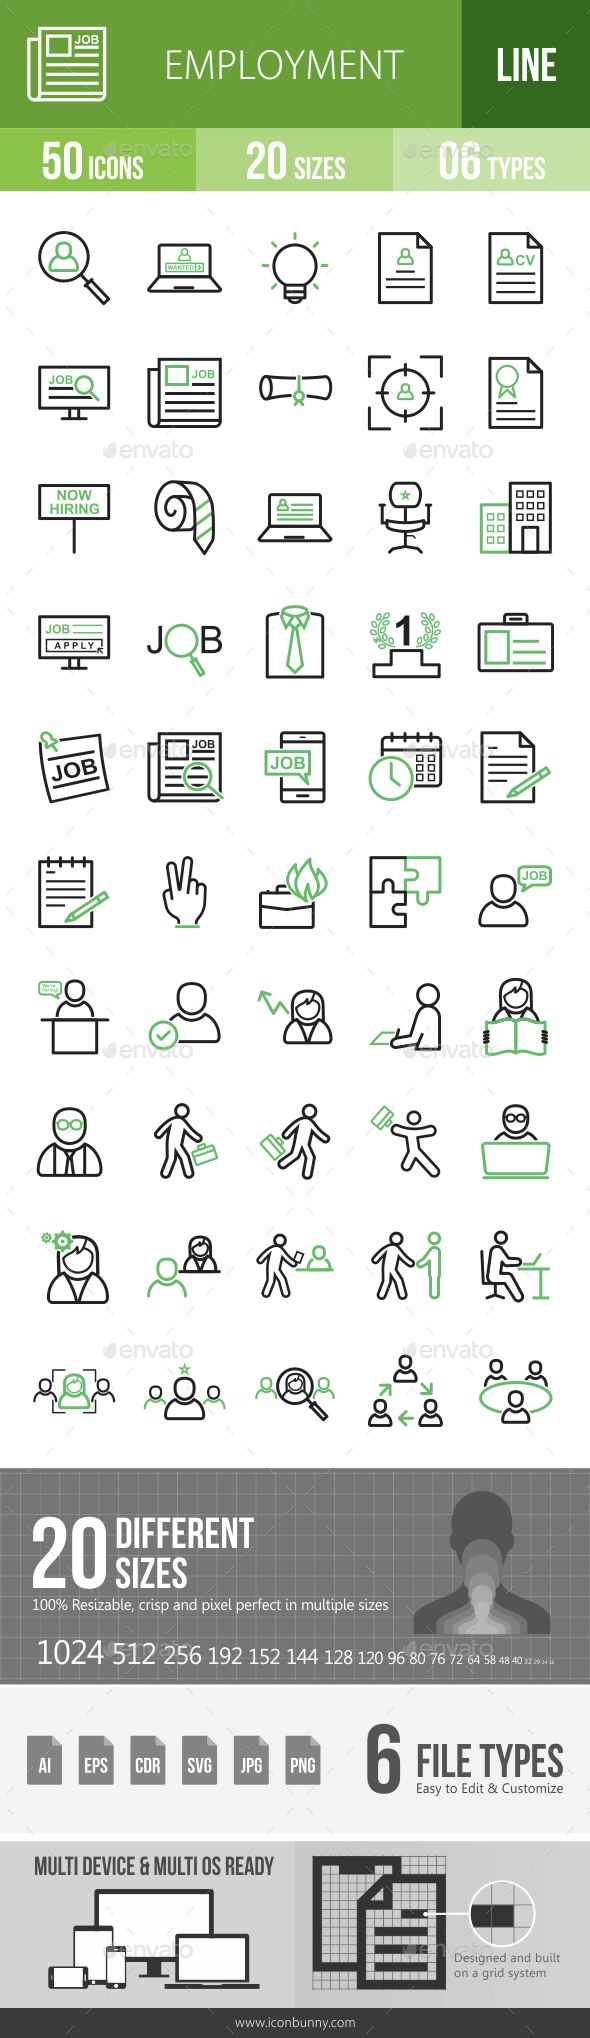 Employment Line Green & Black Icons